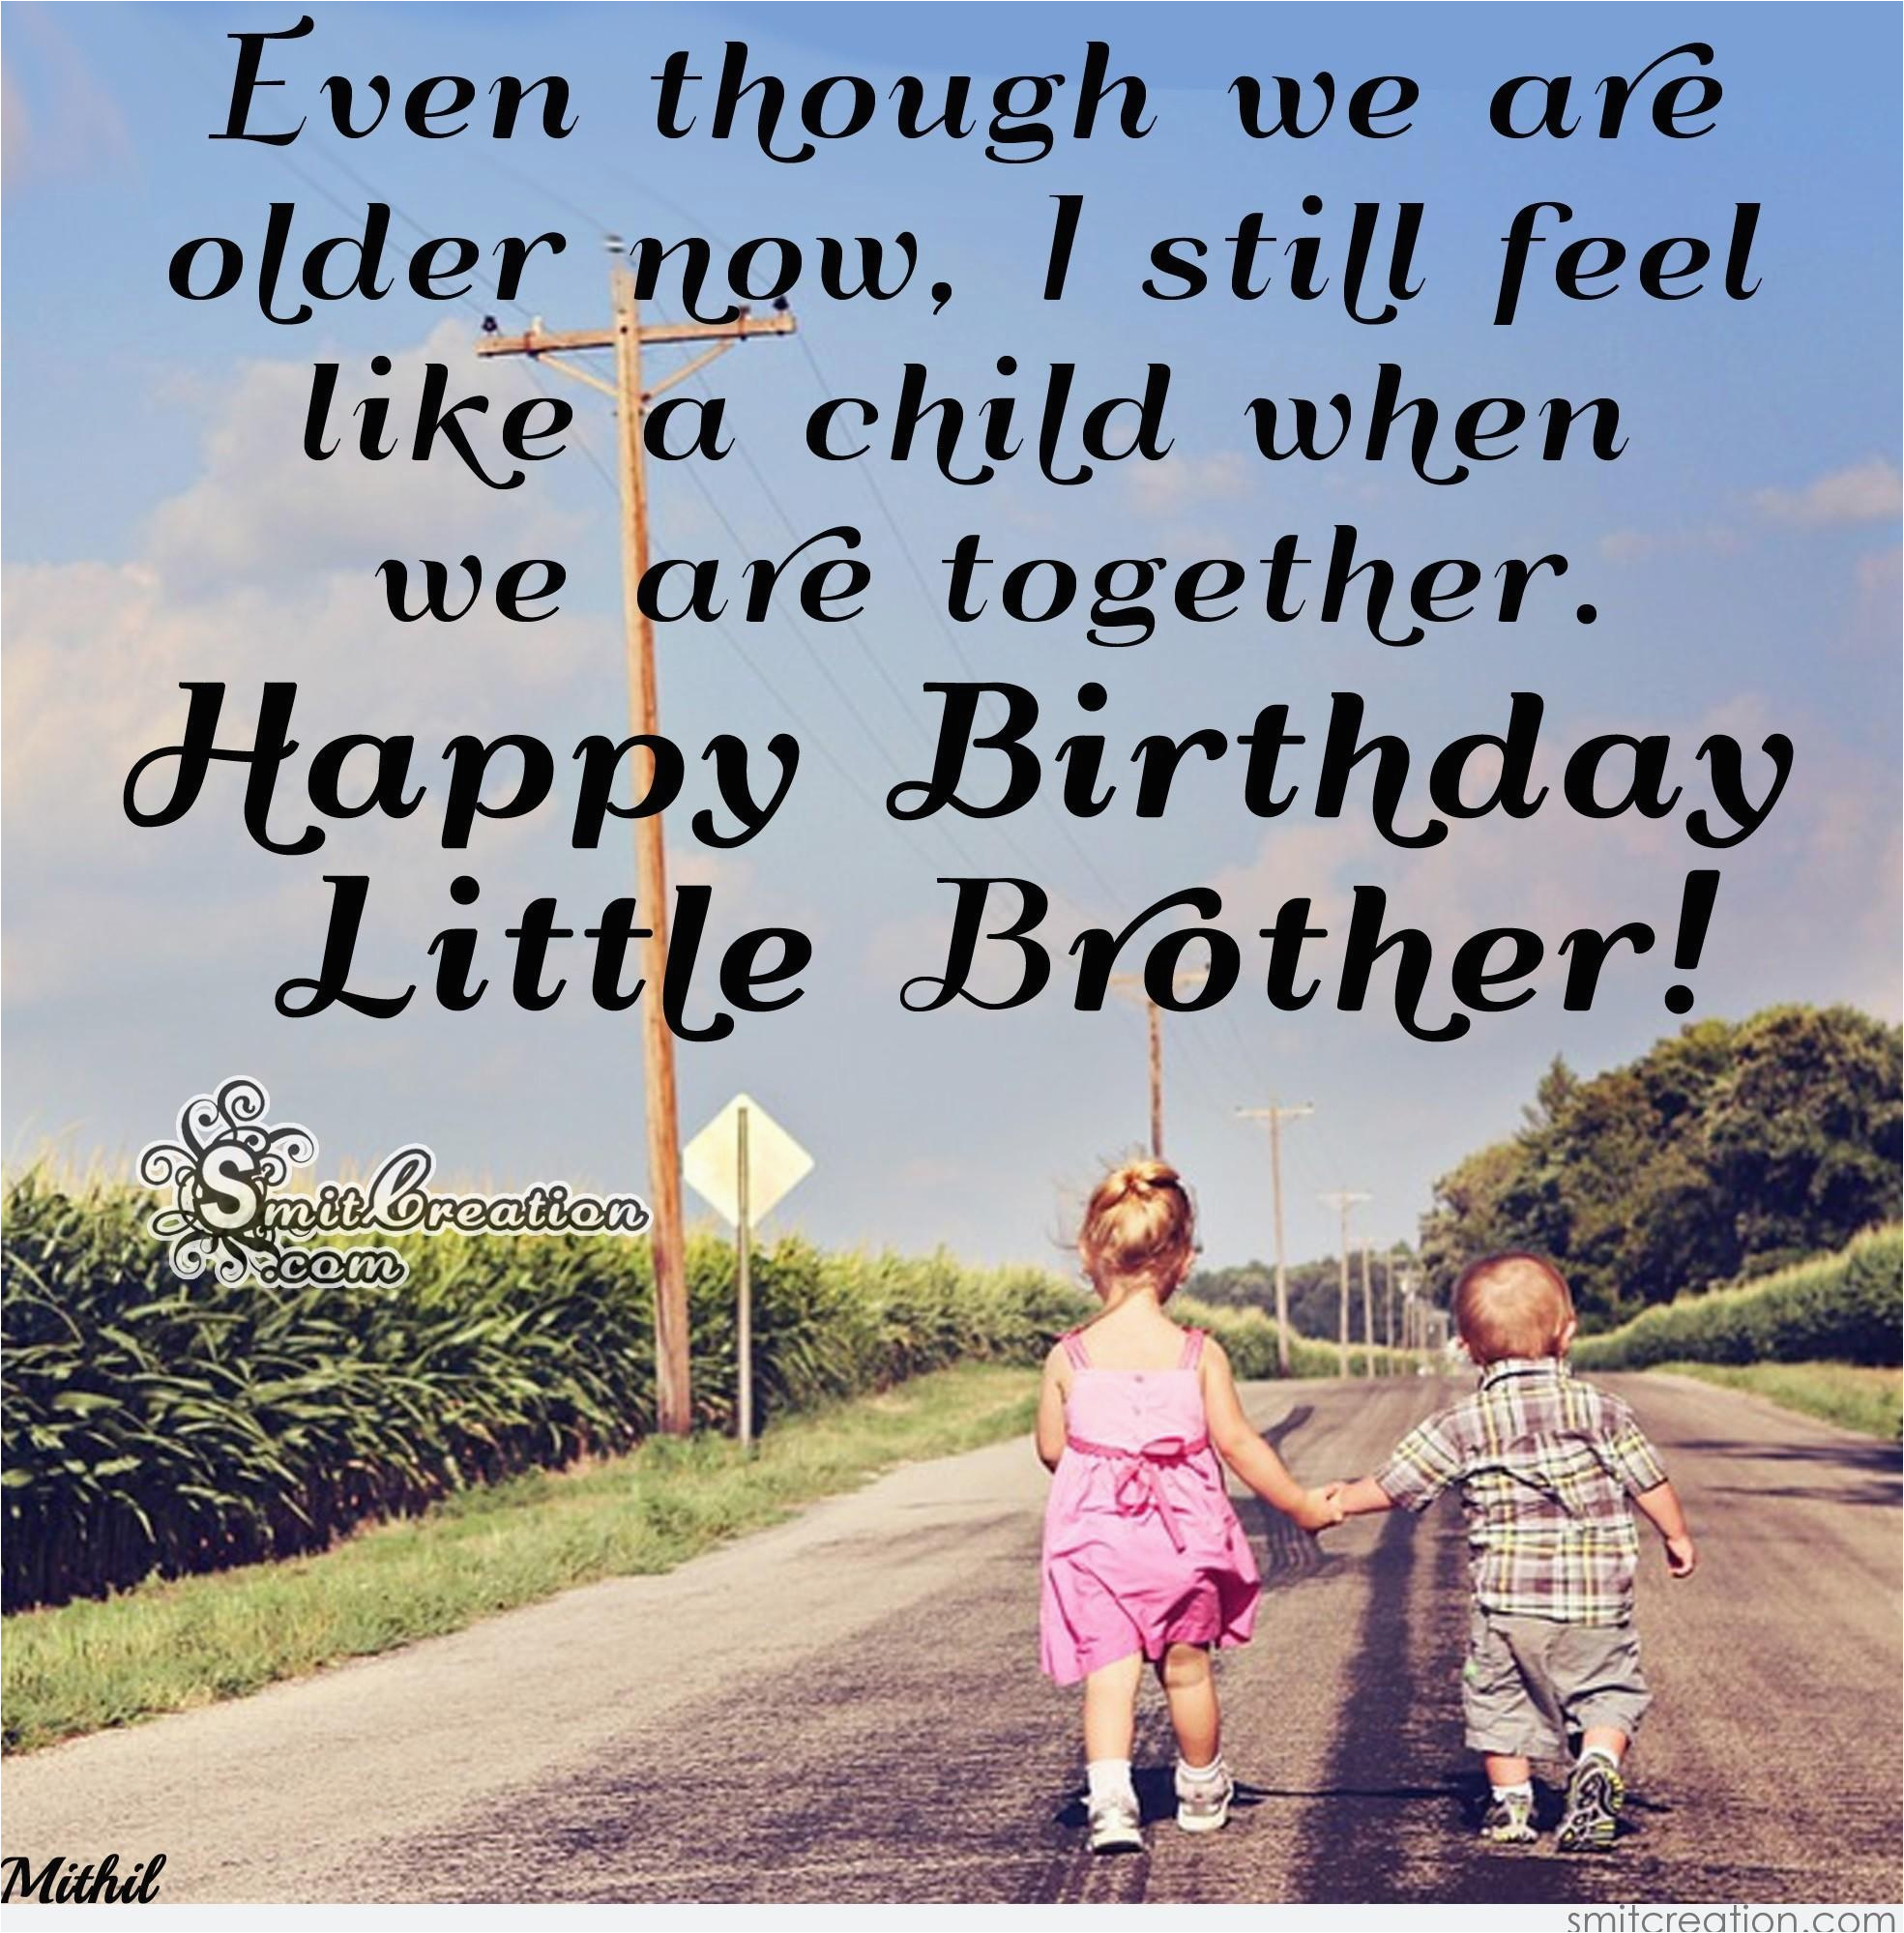 Birthday Cards For Little Brother Wishes Pictures And Graphics